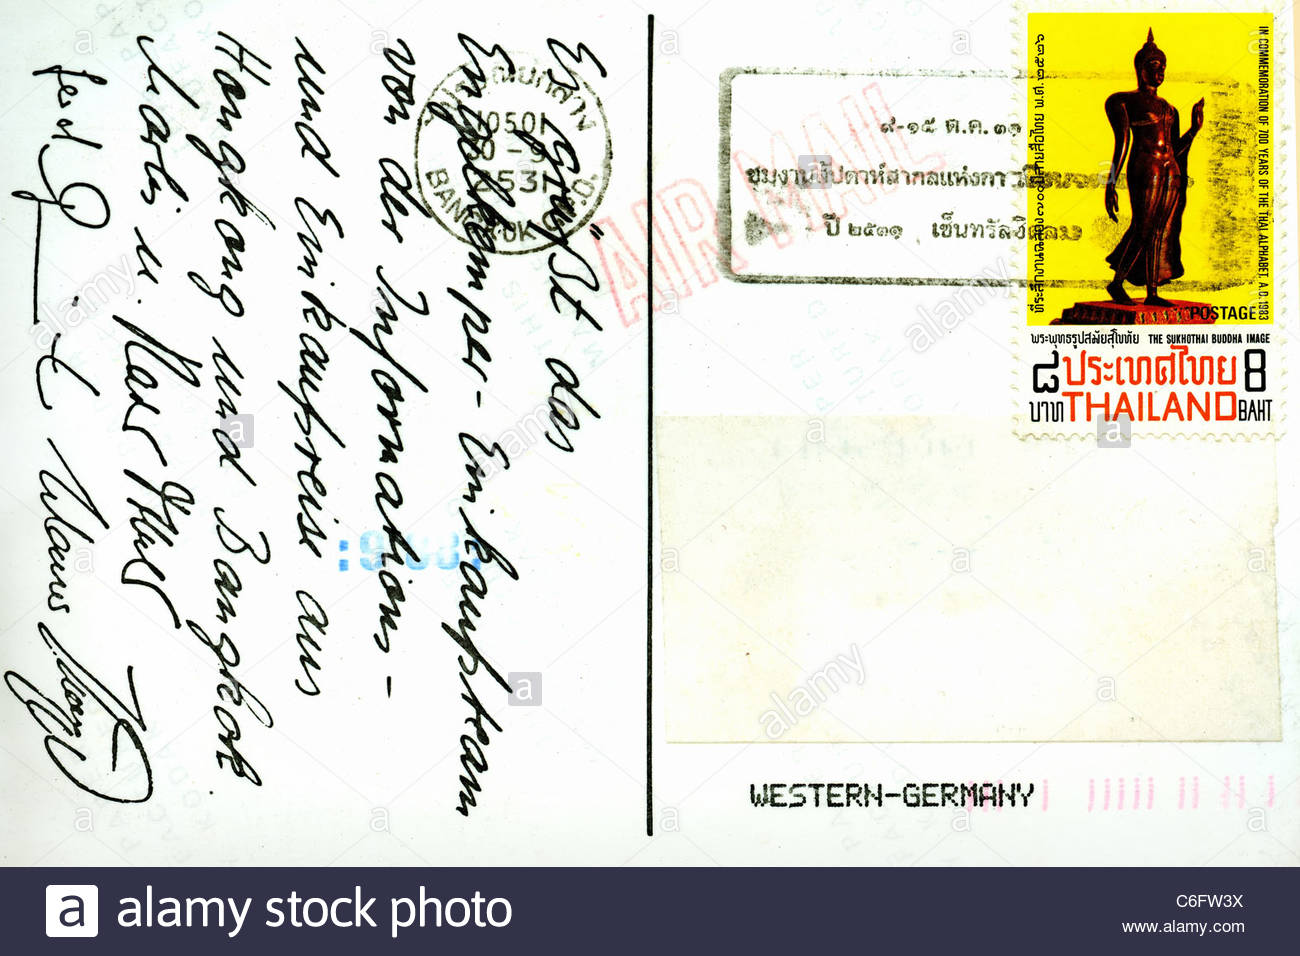 Vintage Postcard Sent From Thailand To Western Germany Around 1984 - Stock  Image